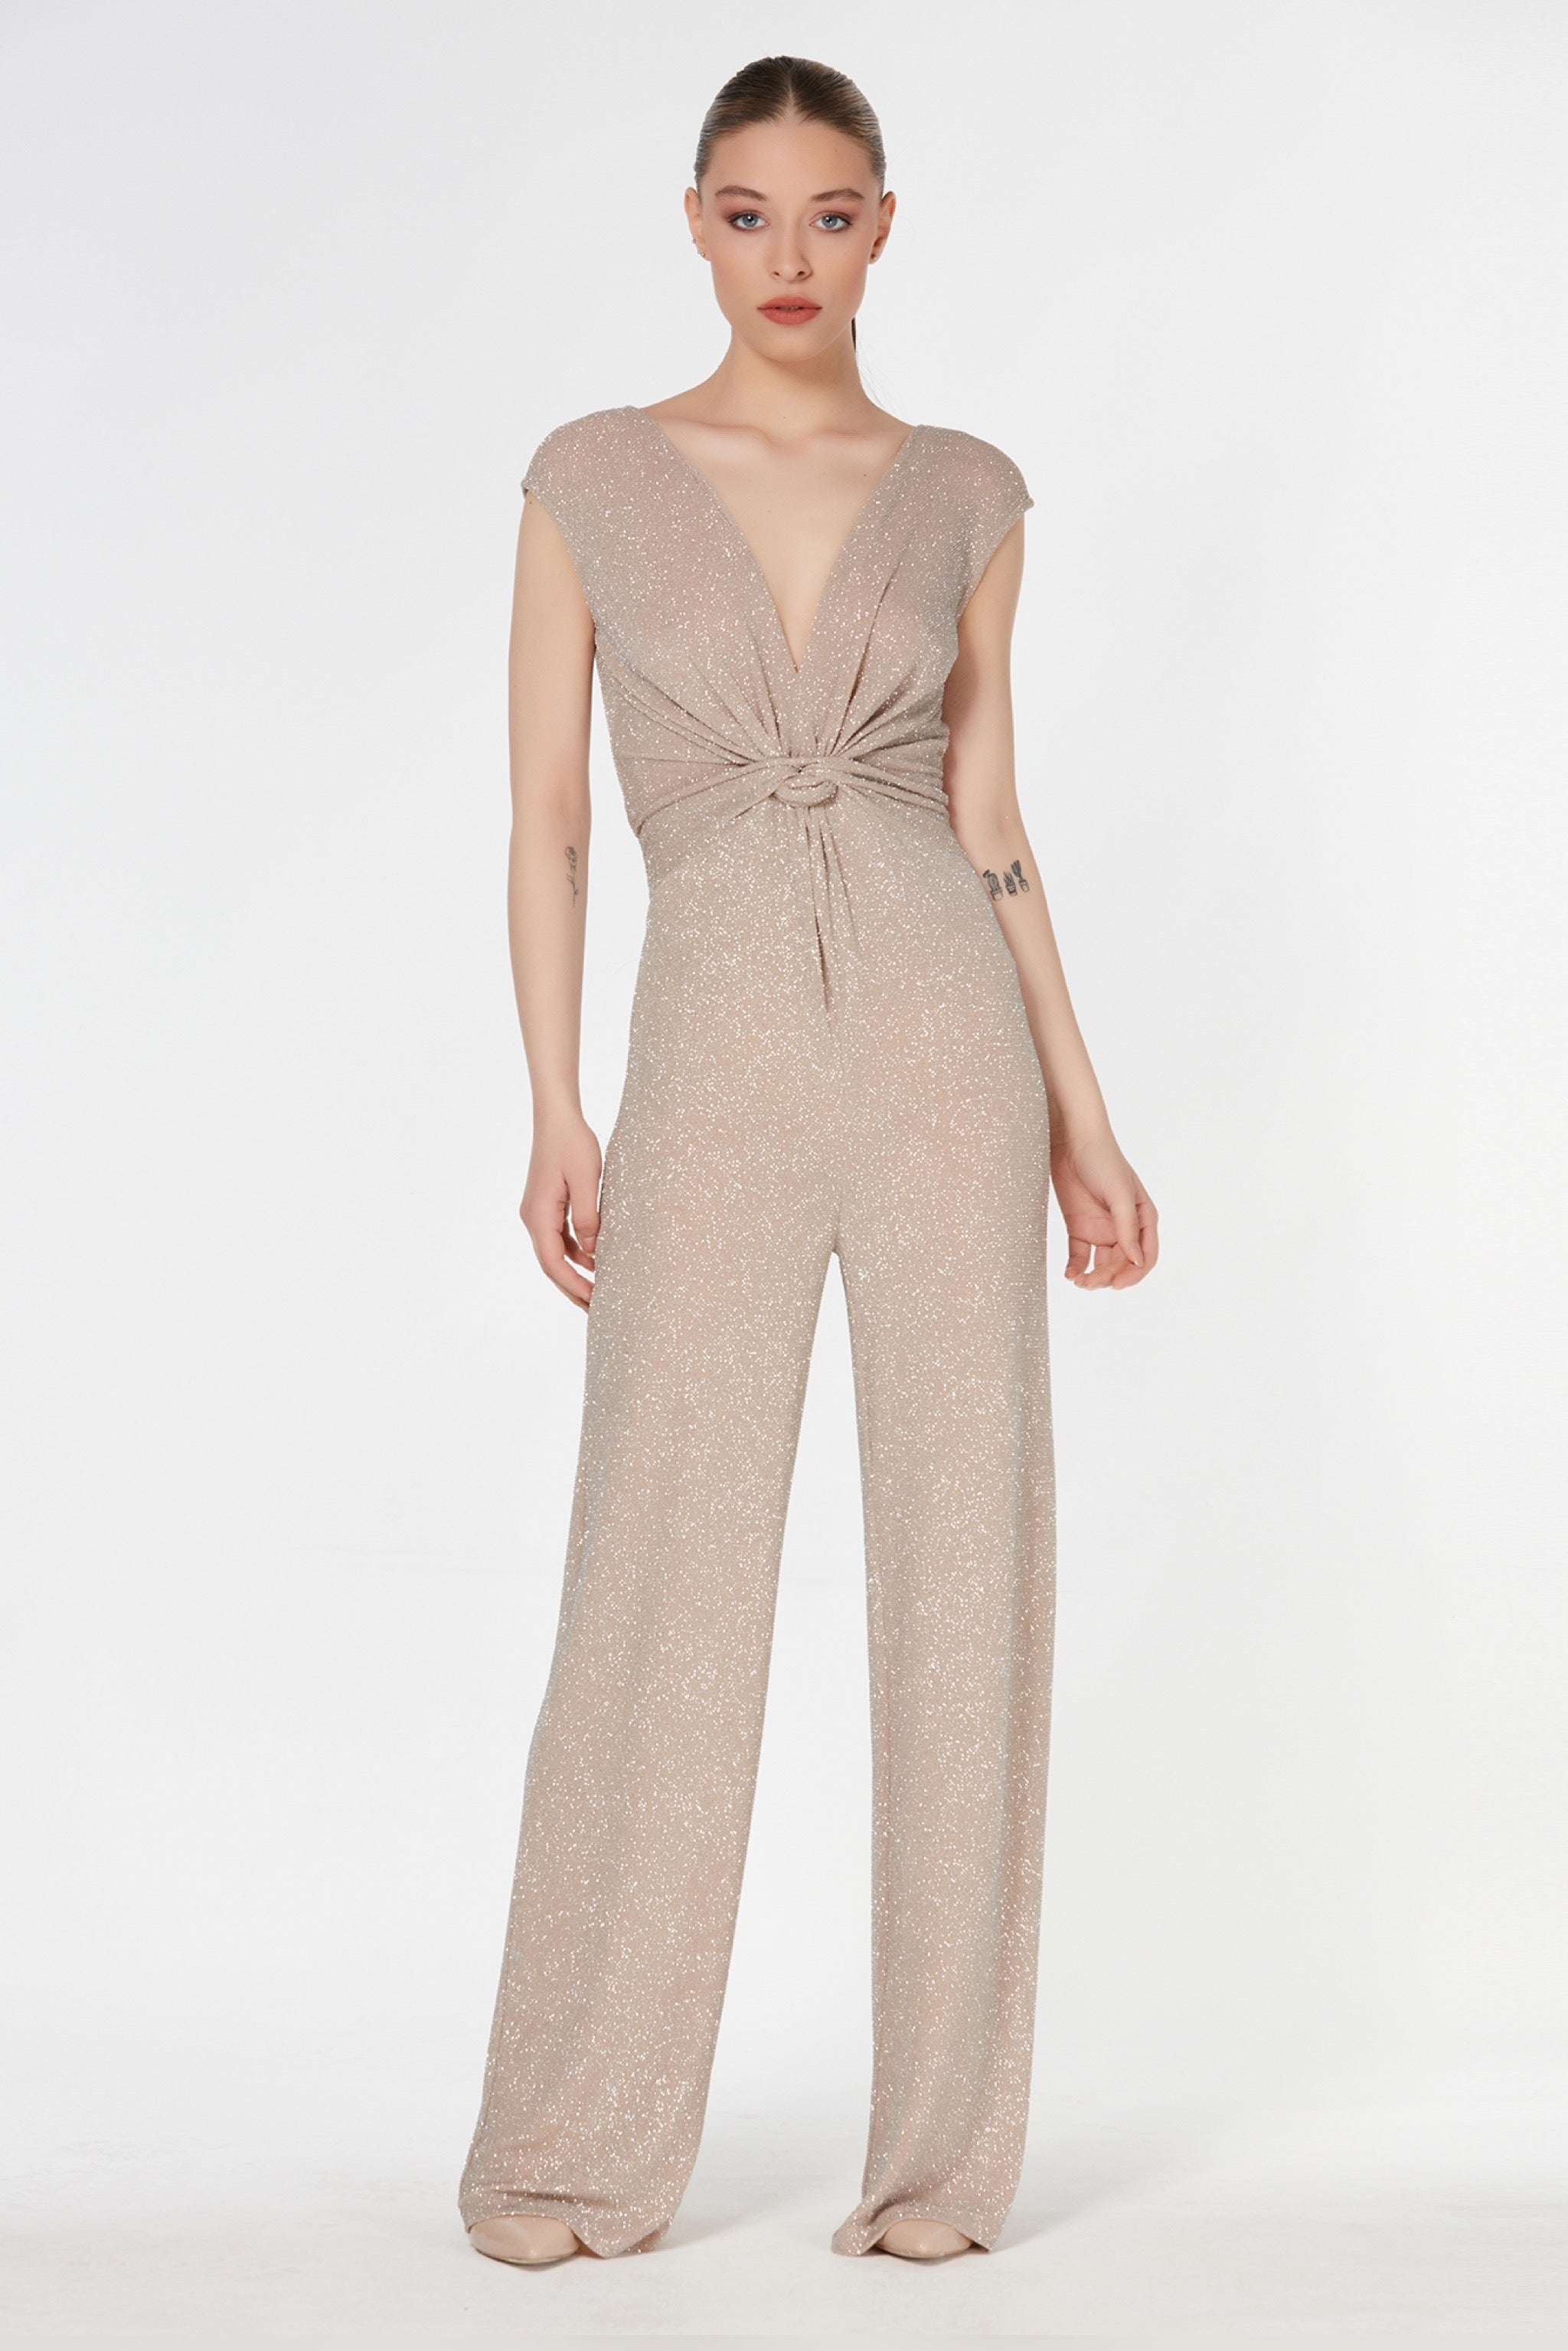 V neck sleeveless shiny glitter wrap jumpsuit - 71829